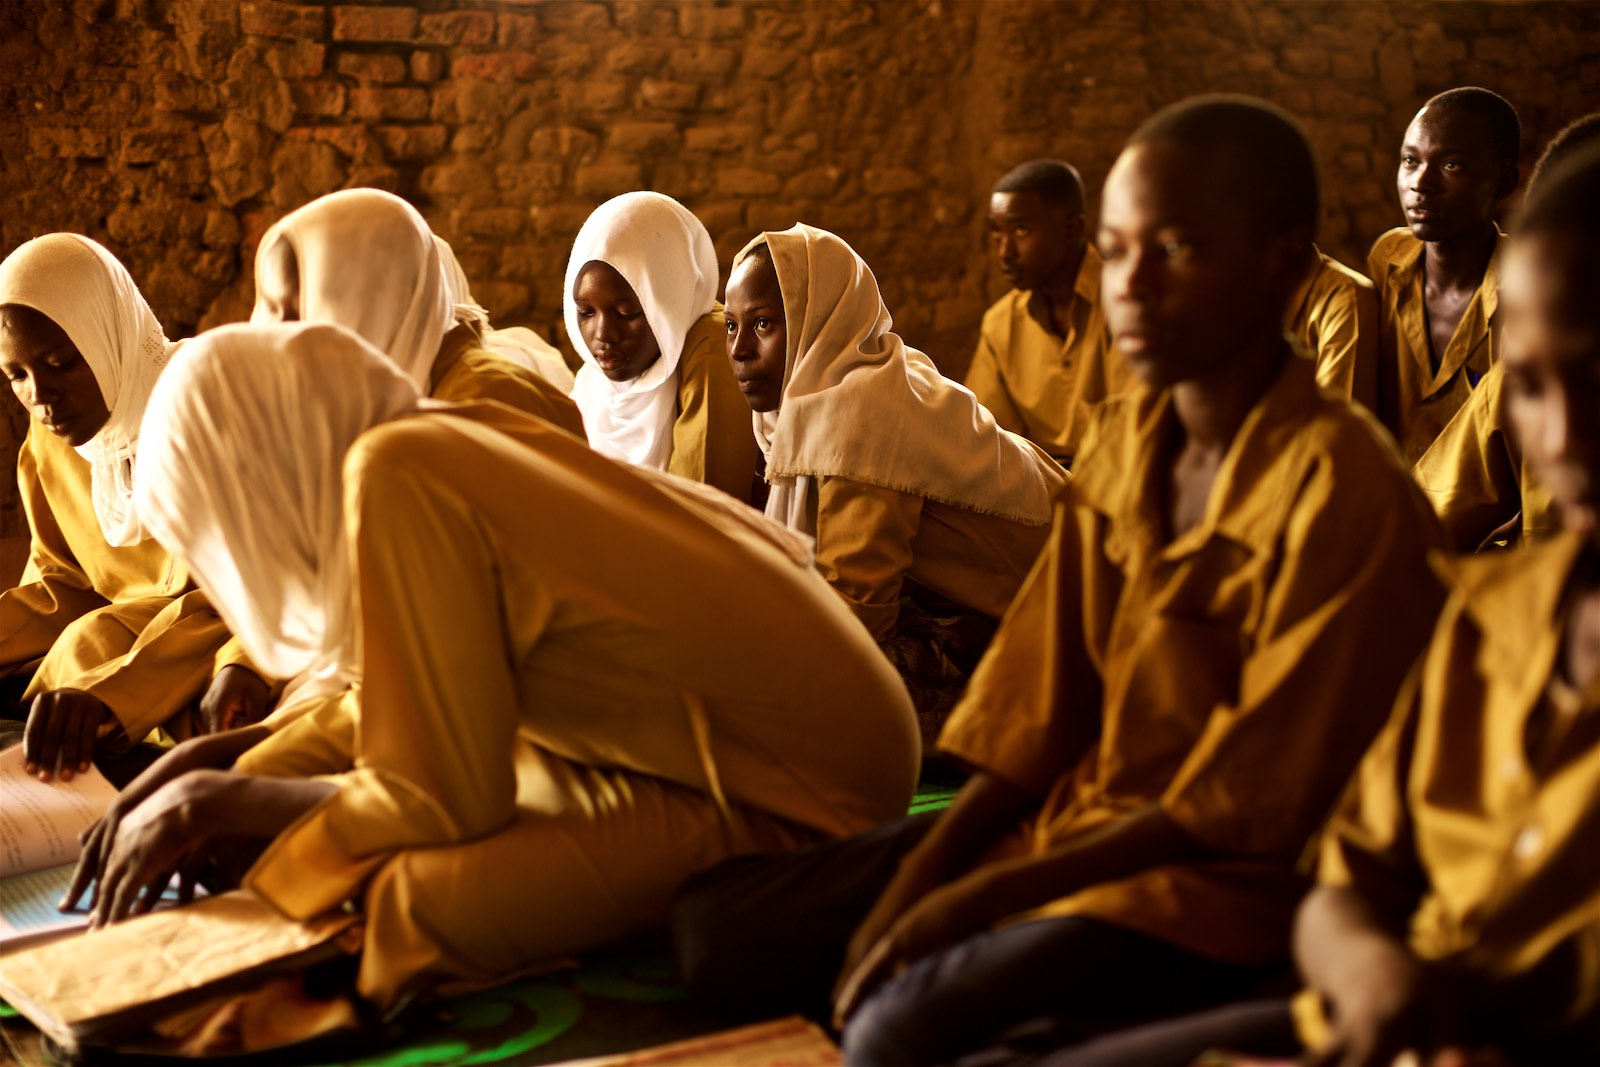 denis-bosnic-chad-school-jrs-jesuit-refugee-service-students-education-mercy-in-motion-8.jpg